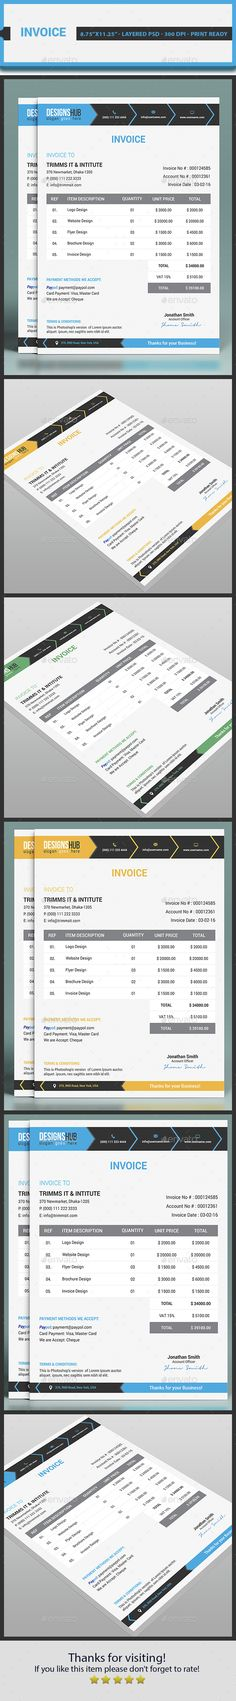 Invoice Template by geckooteams Features 4 color variation - invoice print